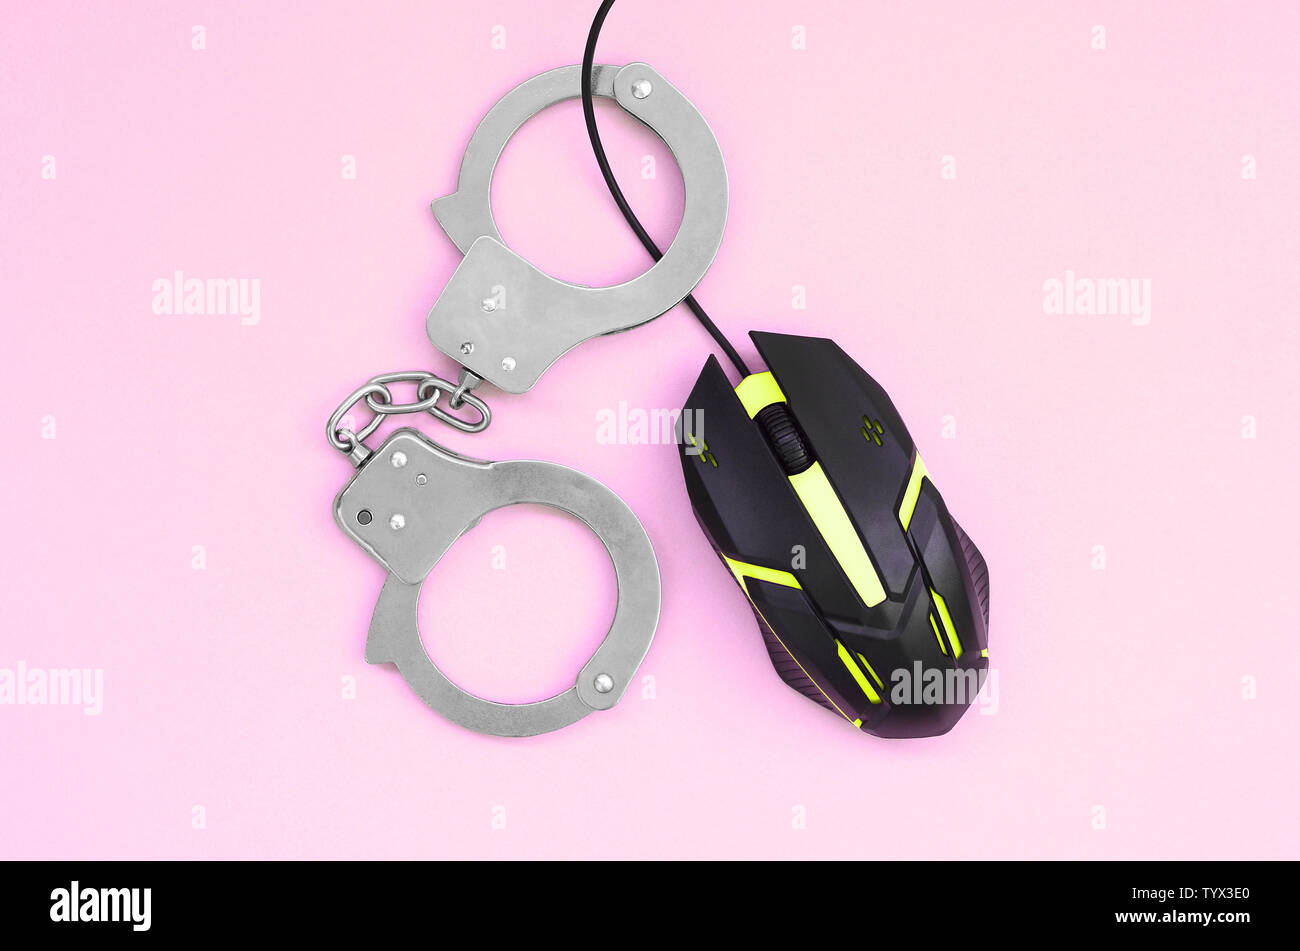 Computer mouse in a yellow color is chained in handcuffs on the background of pink color. The concept of combating computer crime, hackers and piracy. - Stock Image